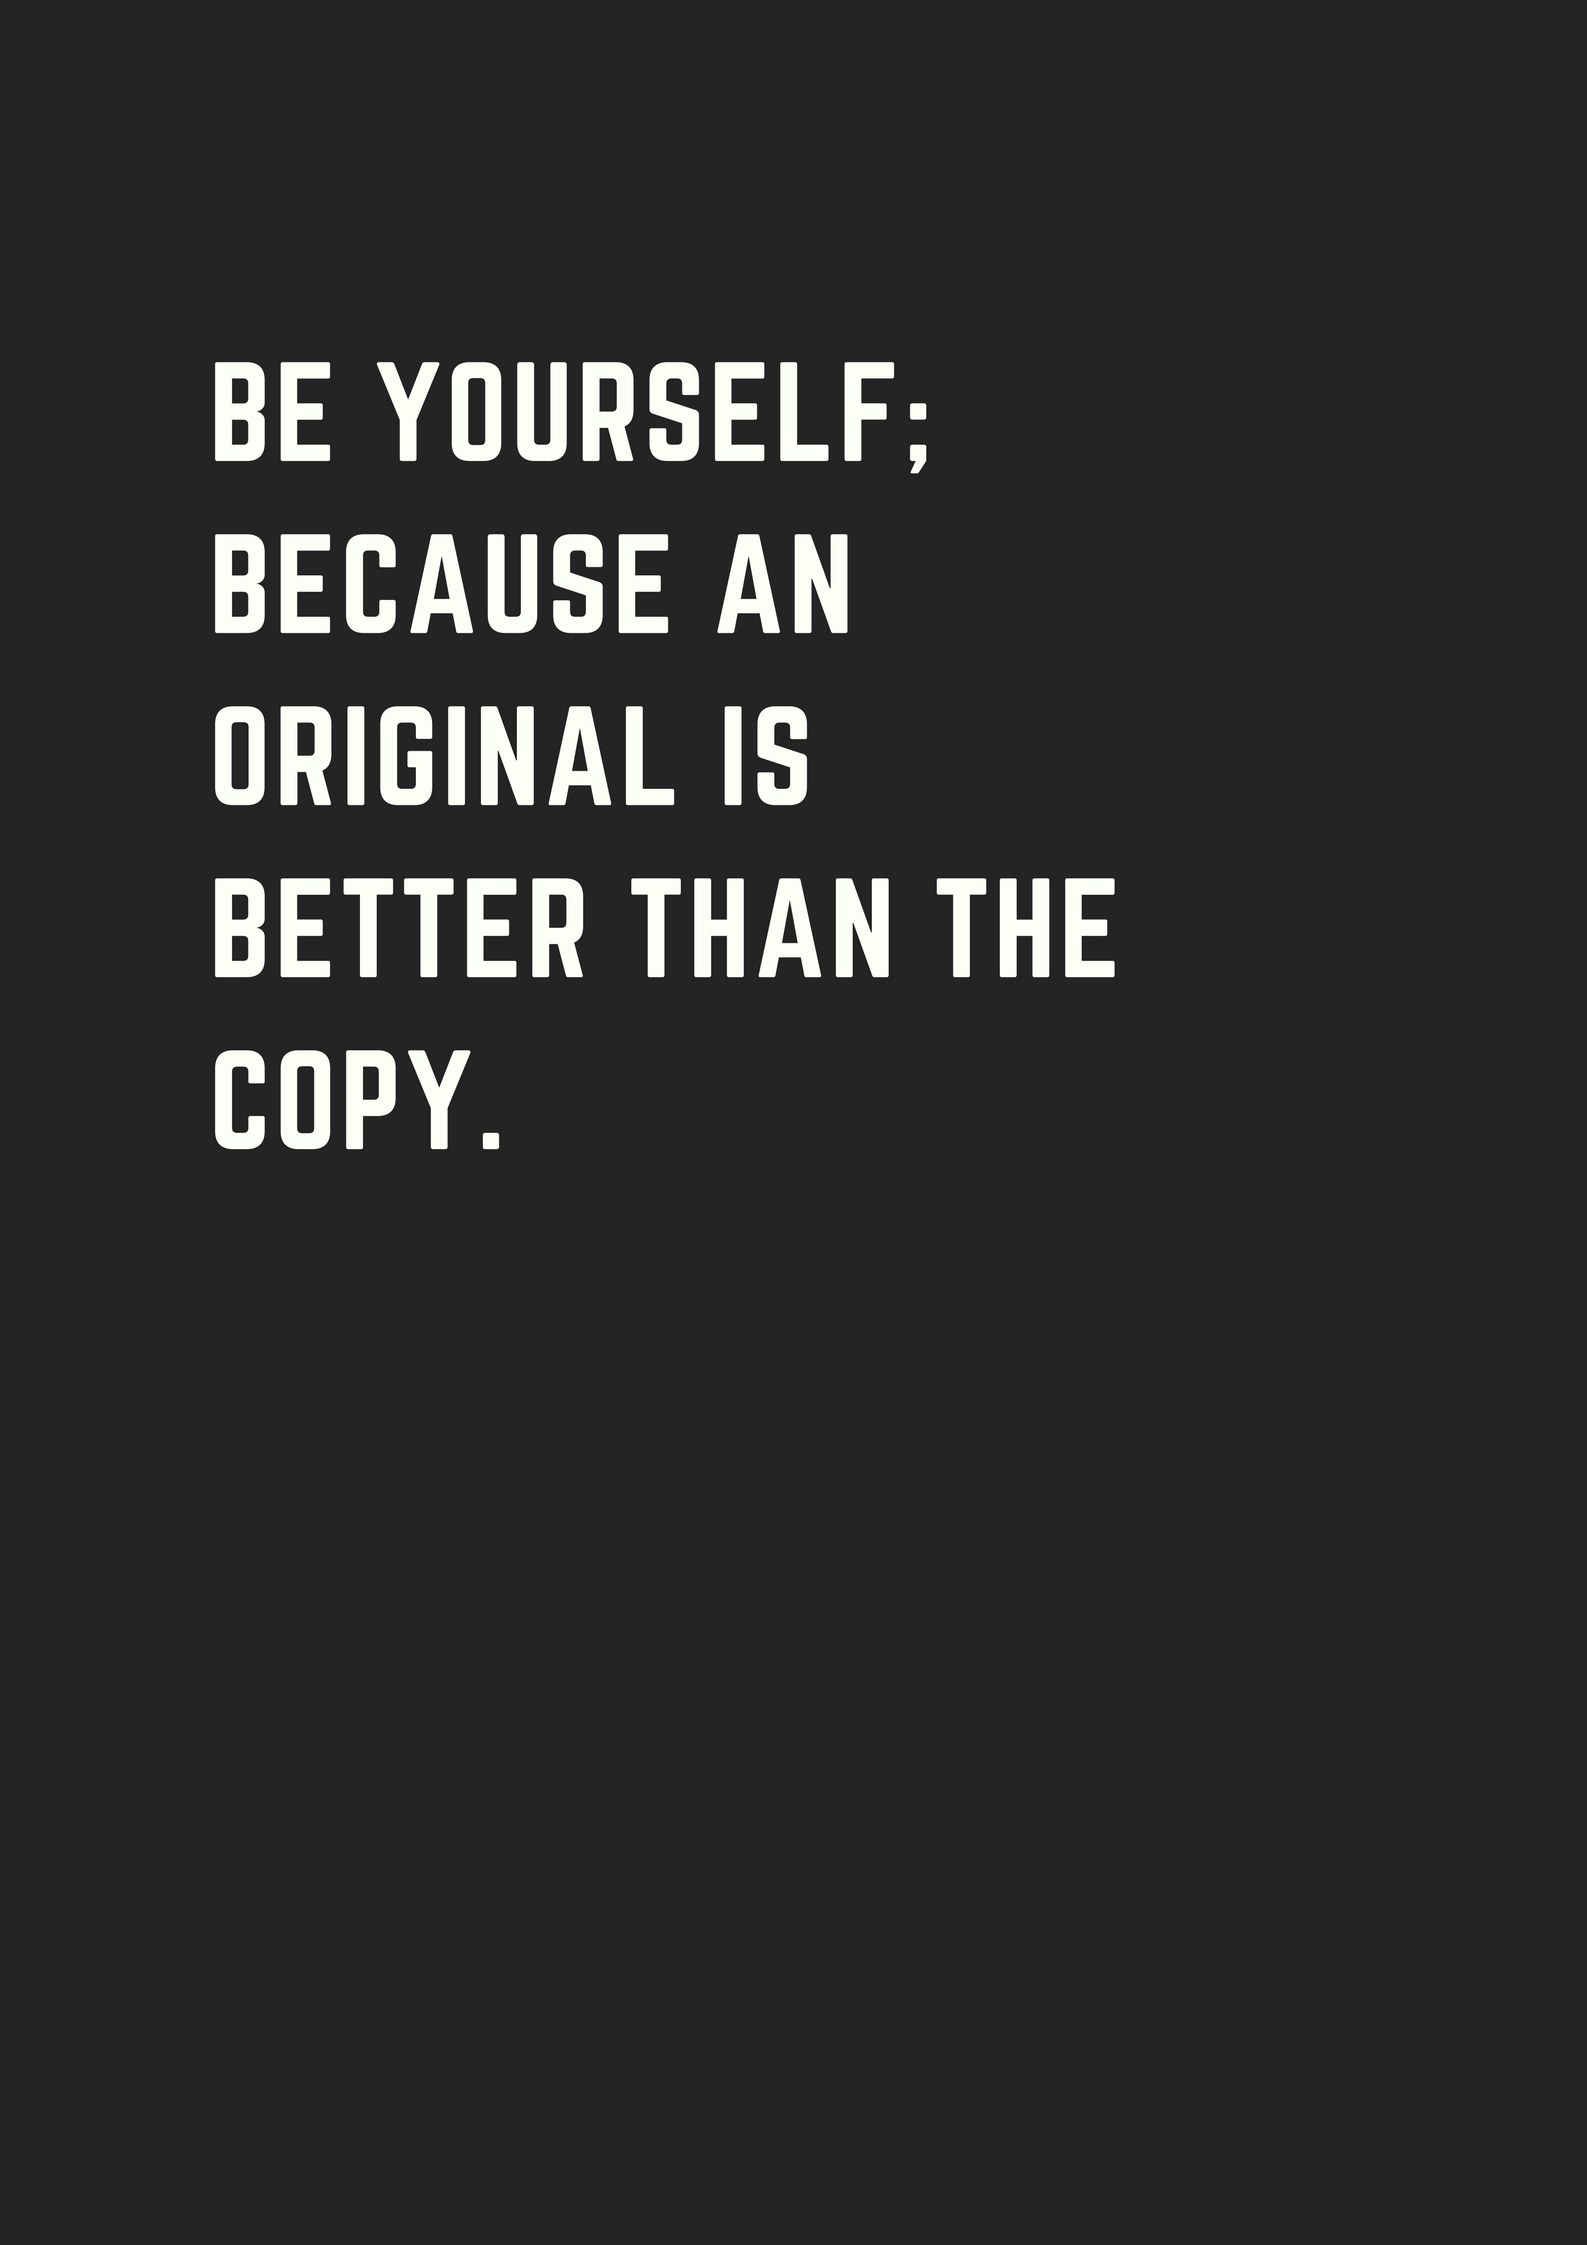 Best black and white inspirational quotes